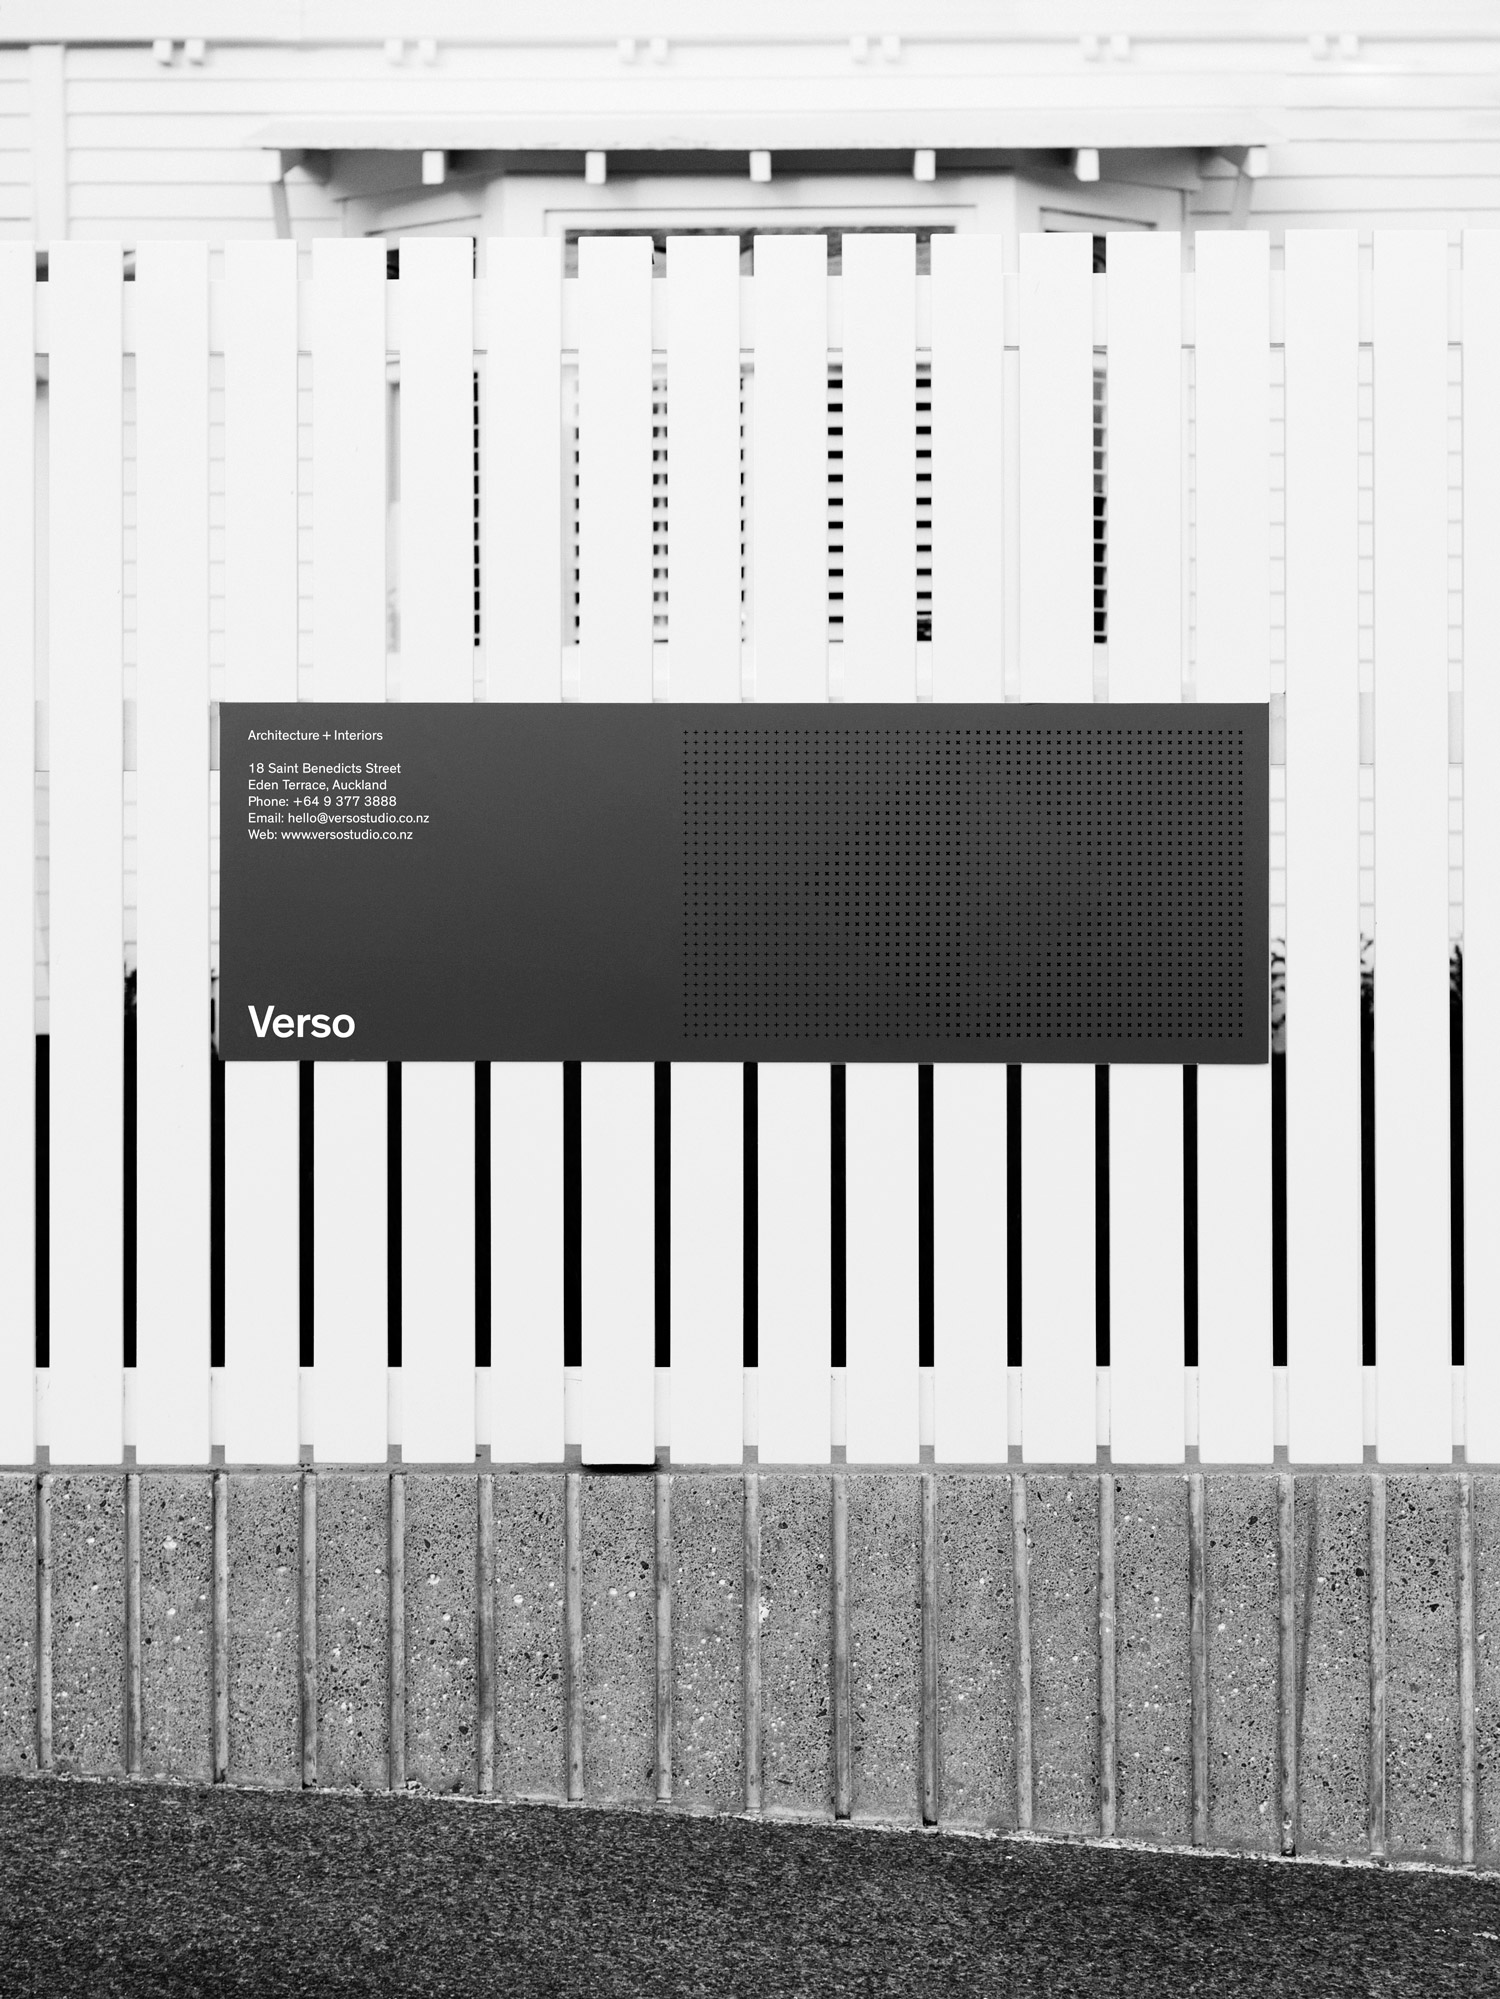 Brand identity and signage by Studio South for Auckland-based architecture and interior business Verso